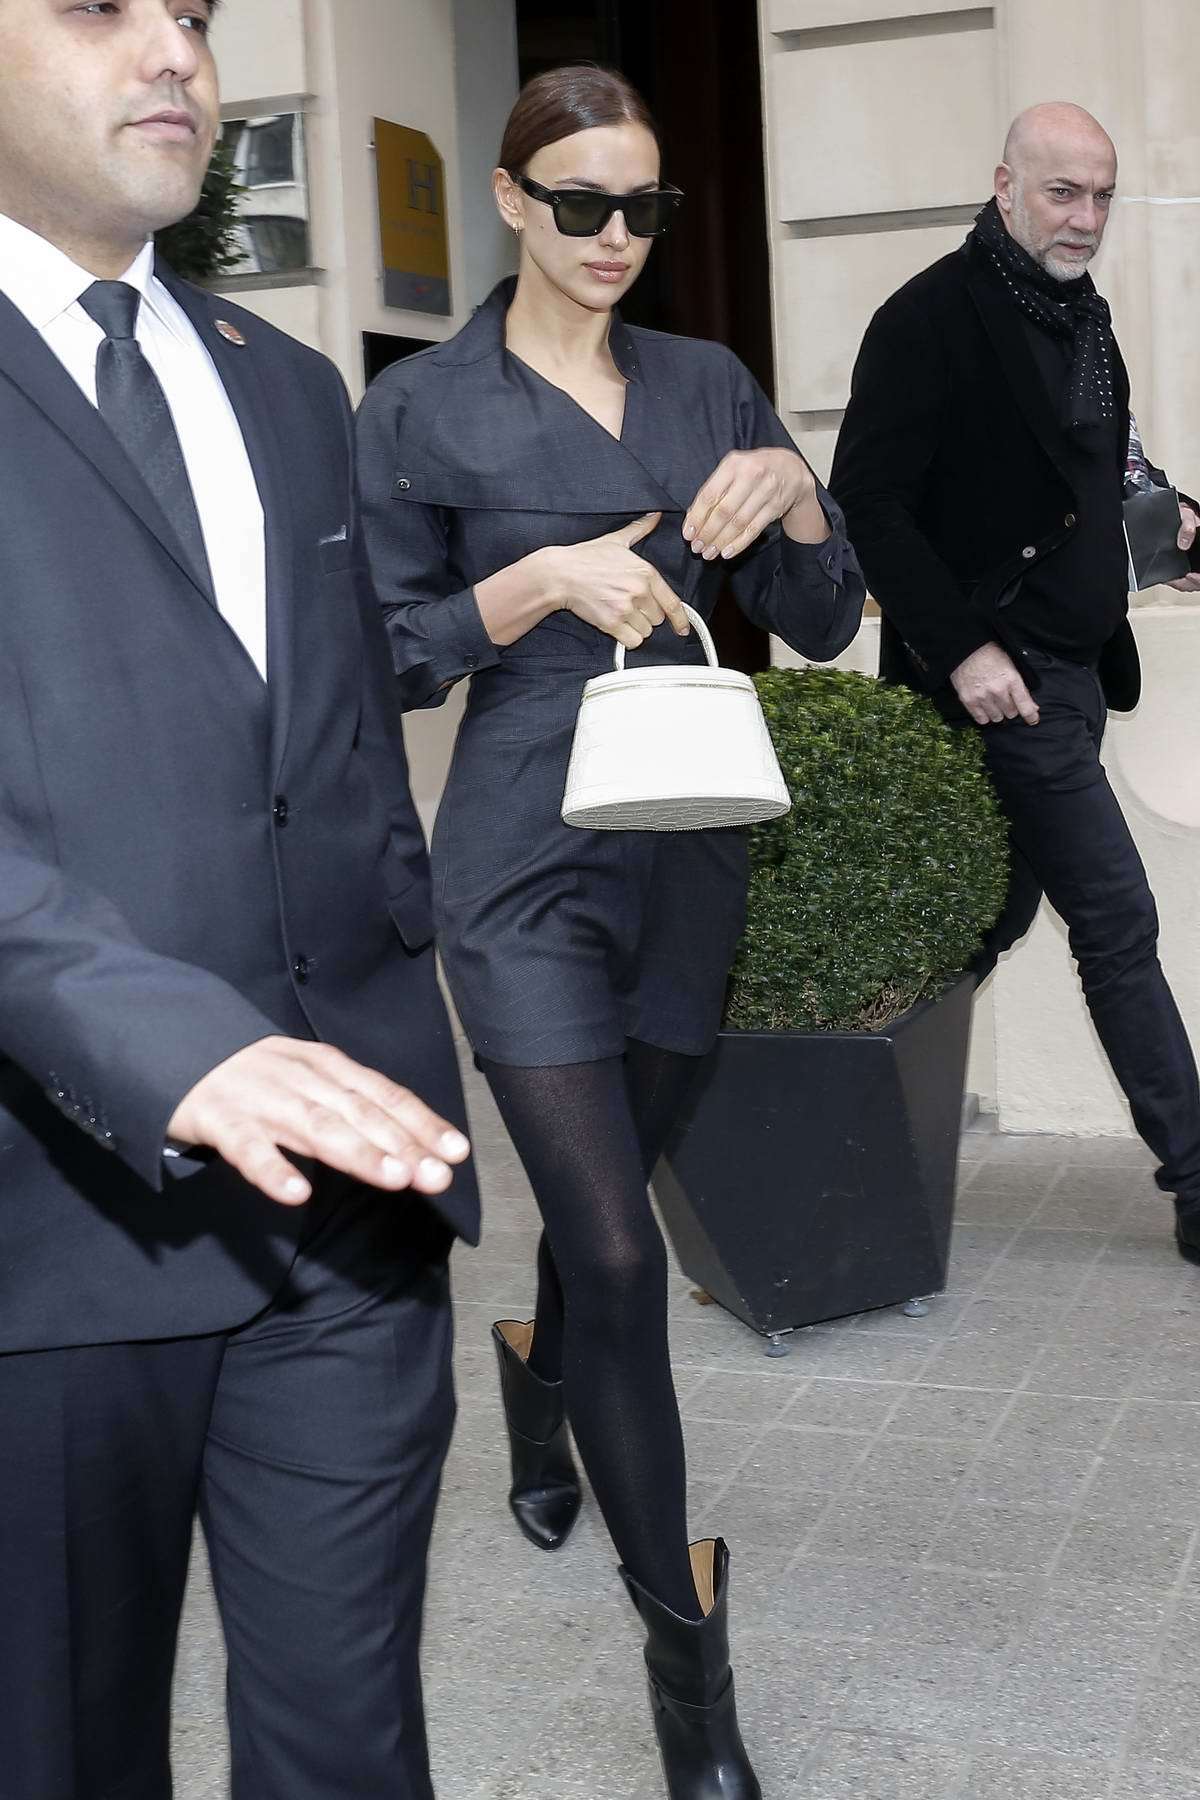 Irina Shayk looks chic in black as she leaves her hotel during Paris Fashion Week 2020 in Paris, France